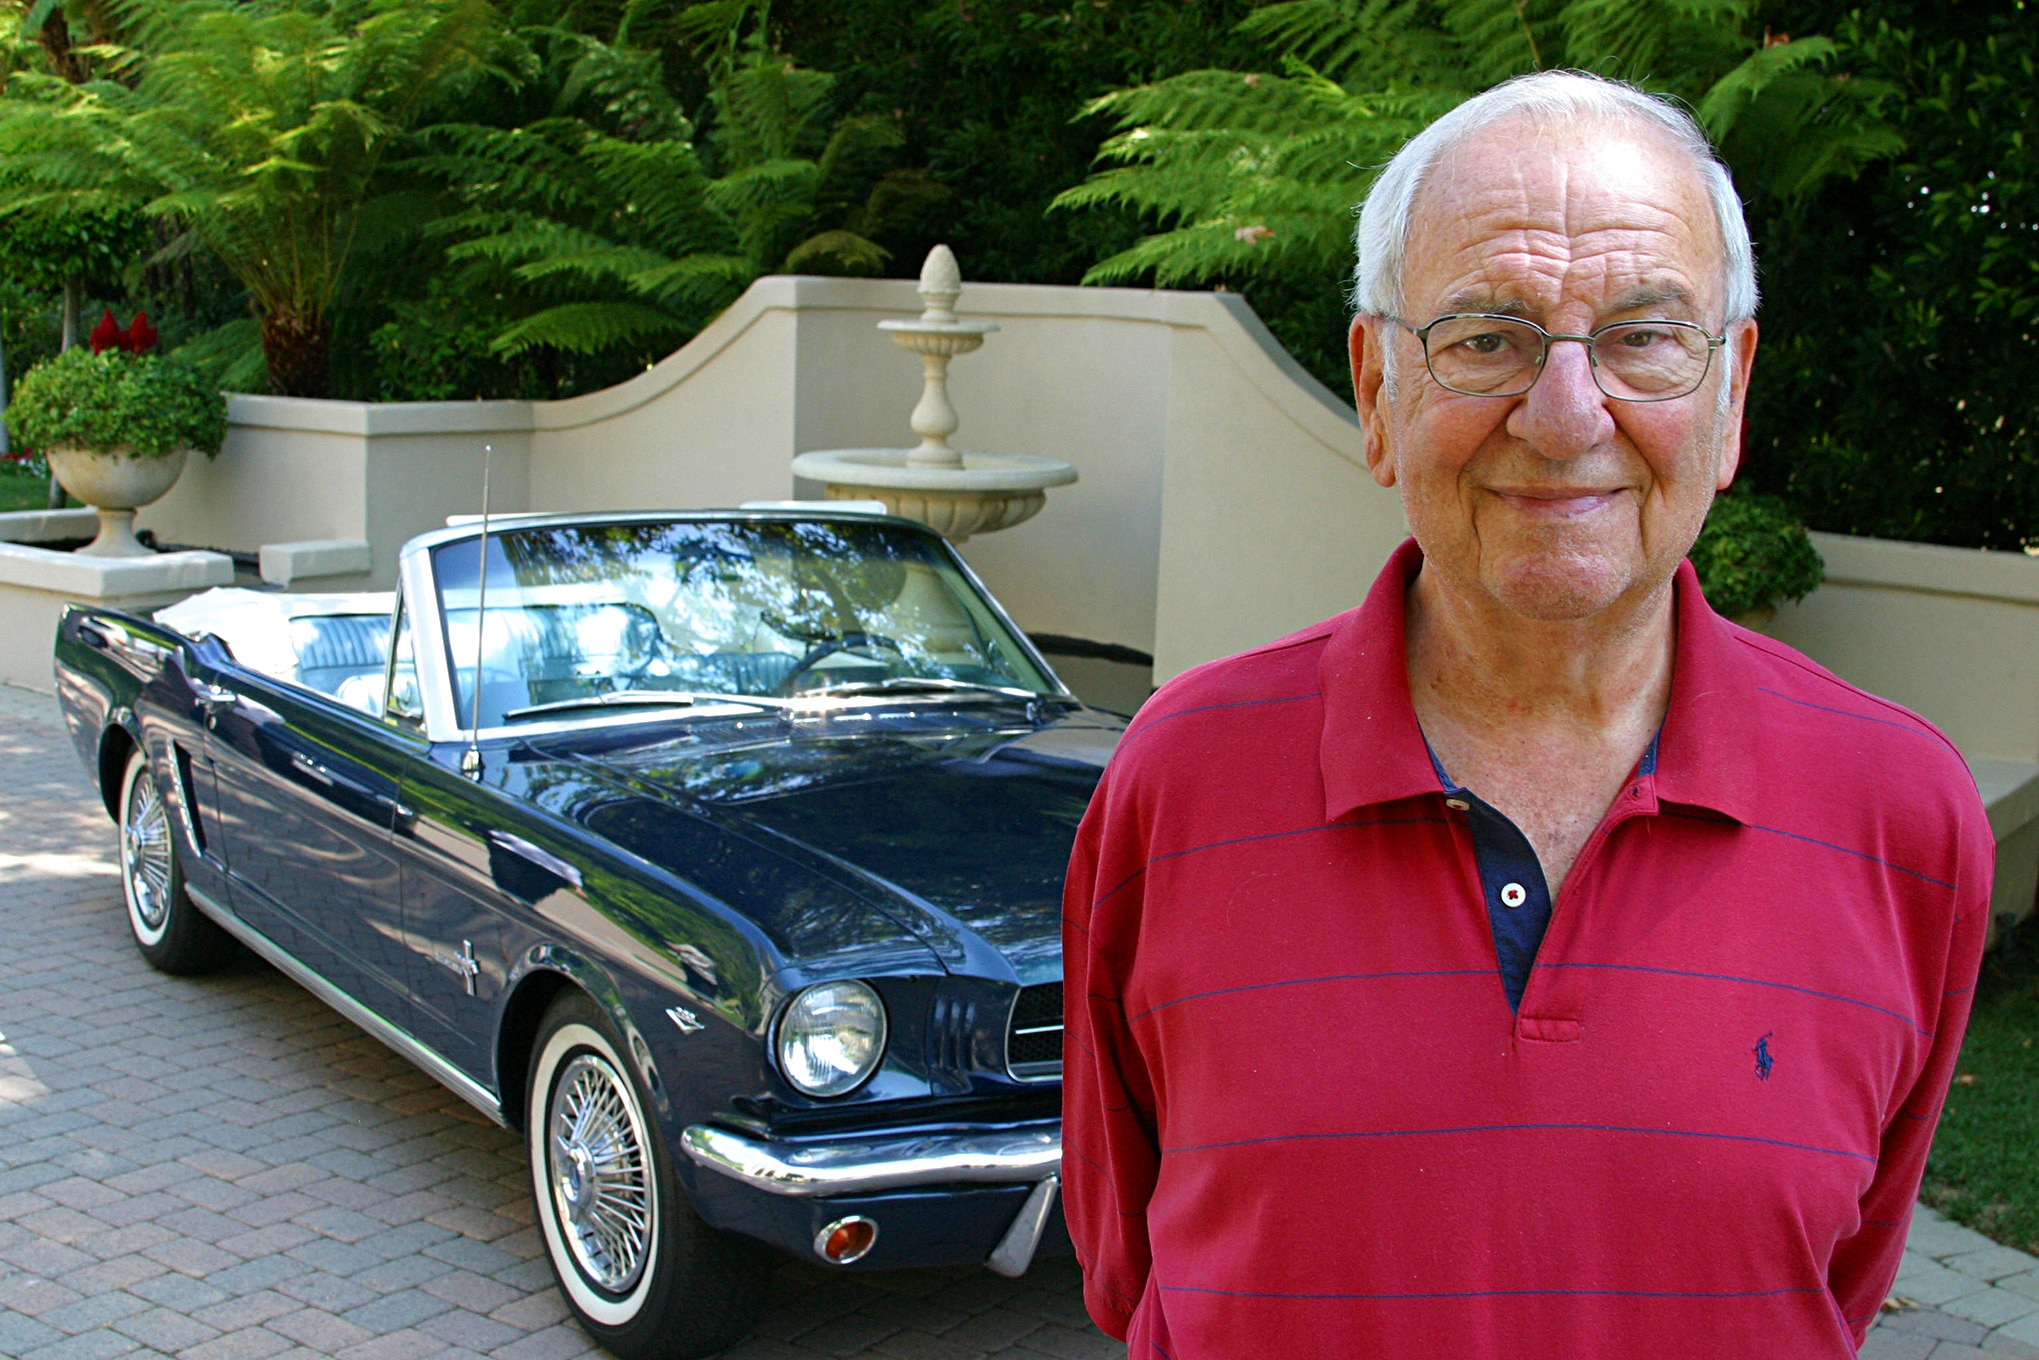 015 Lee Iacocca Remembering This American Icon 1 2